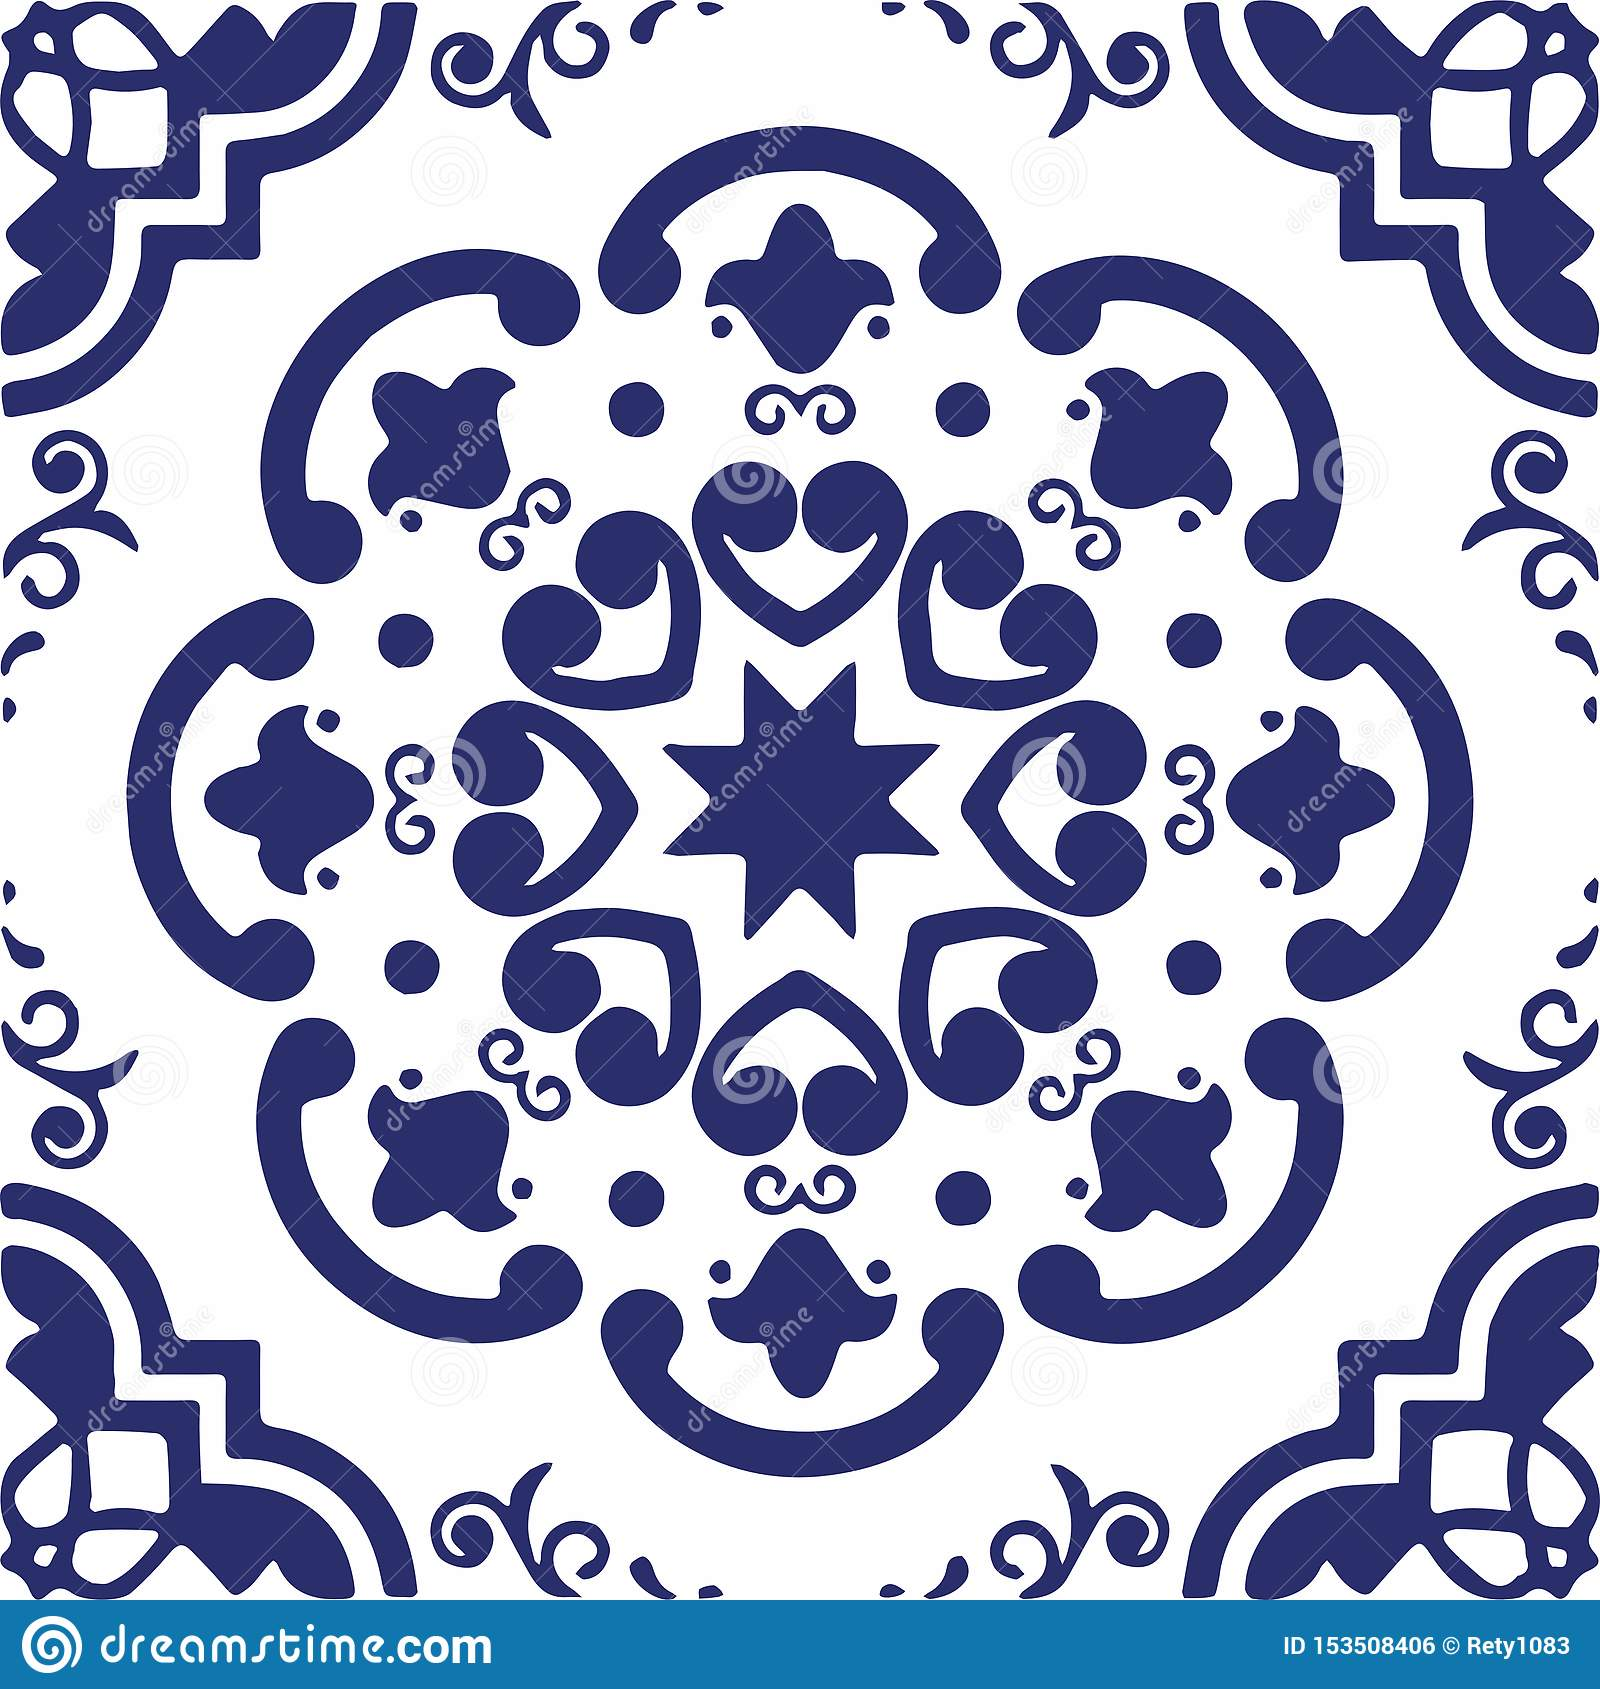 Ceramic Tile Portuguese Tiles Red And Blue Moroccan Tiles Blue And White Kitchen Tiles Bathroom Tiles Surface Pattern Vector Stock Illustration Illustration Of Printing Textile 153508406